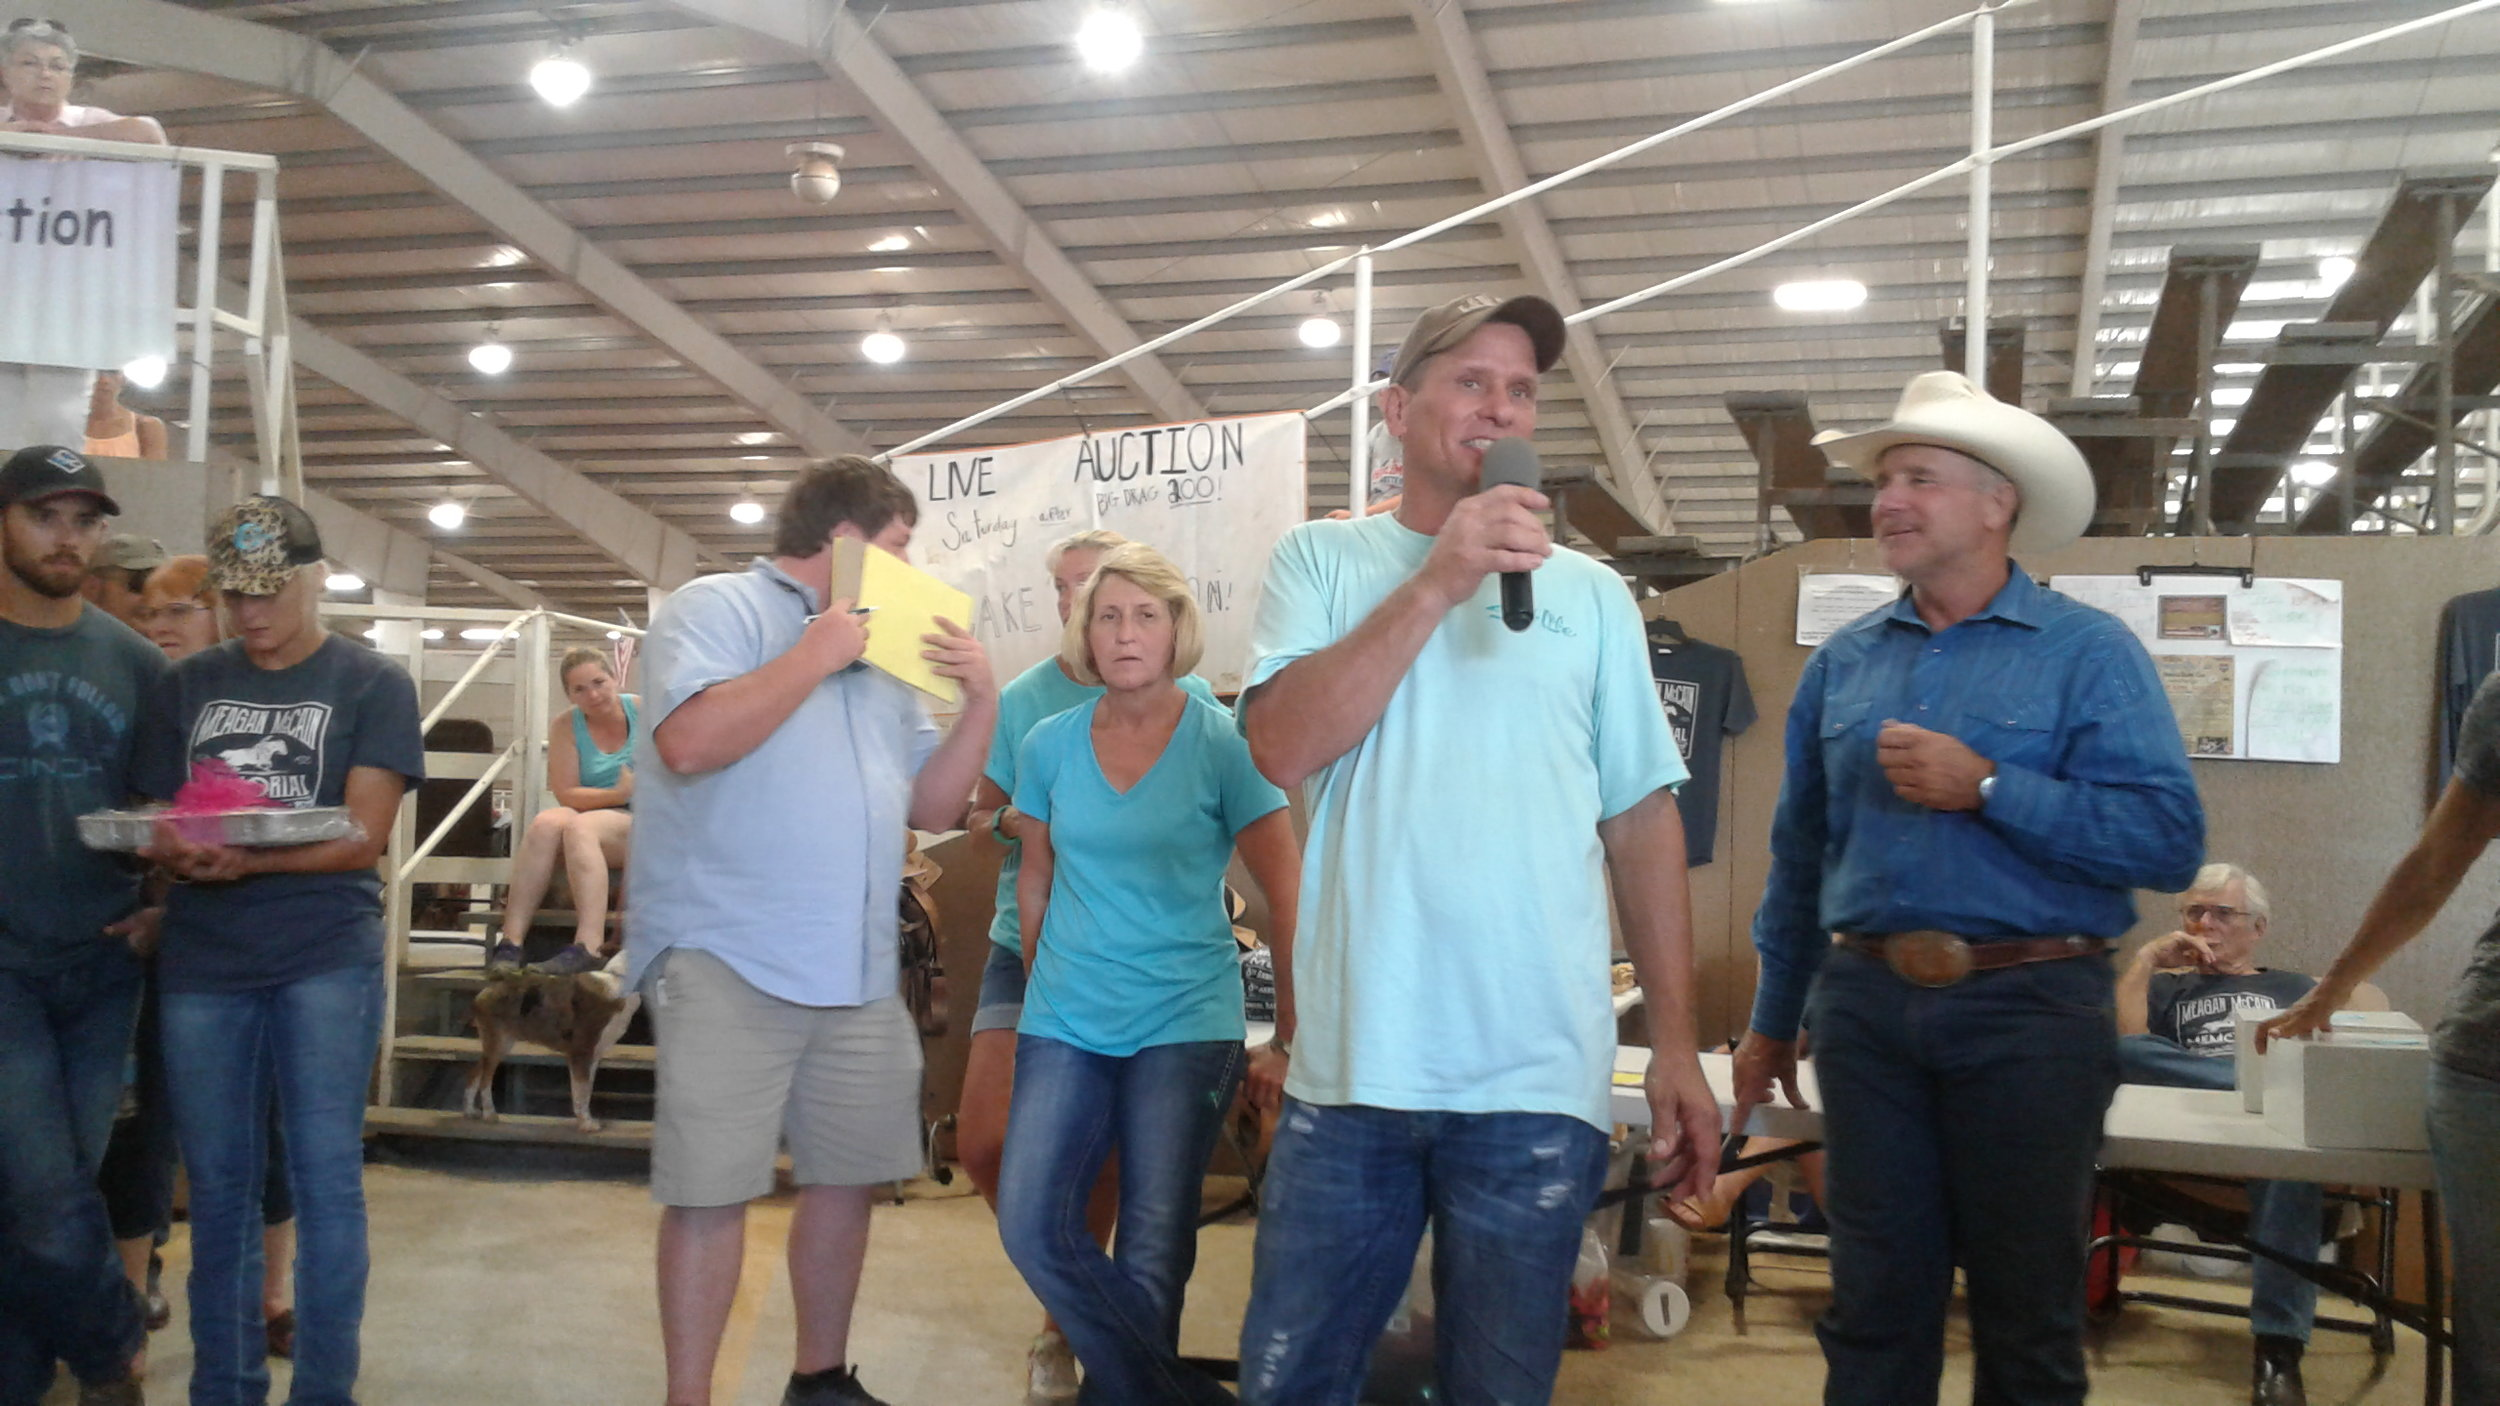 Brett Monroe served as our auctioneer.